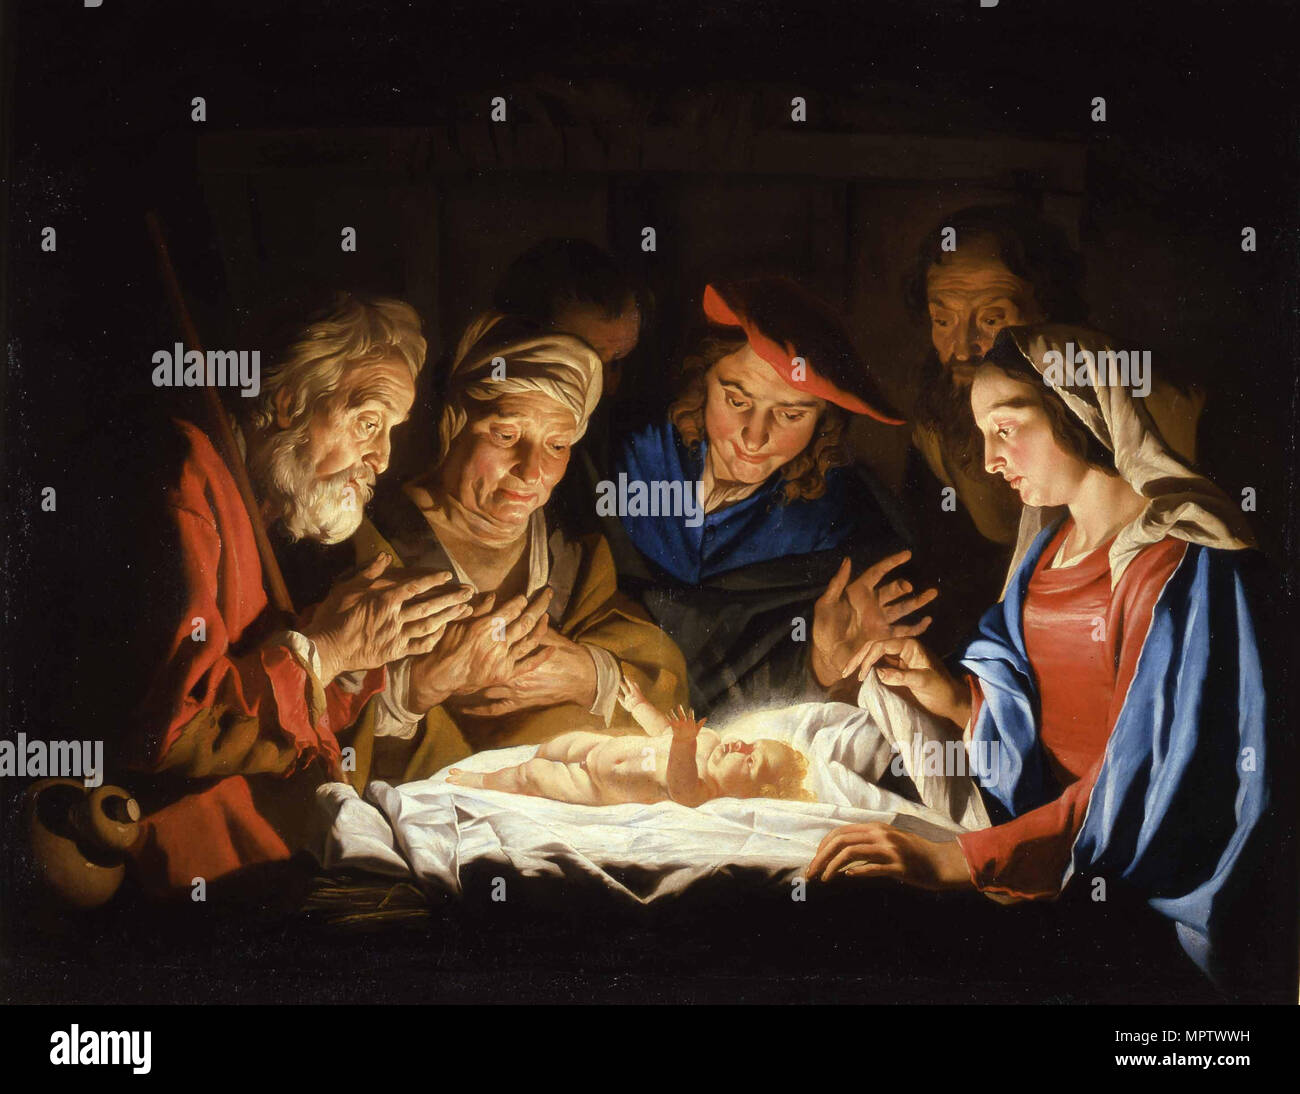 The Adoration of the Christ Child. - Stock Image